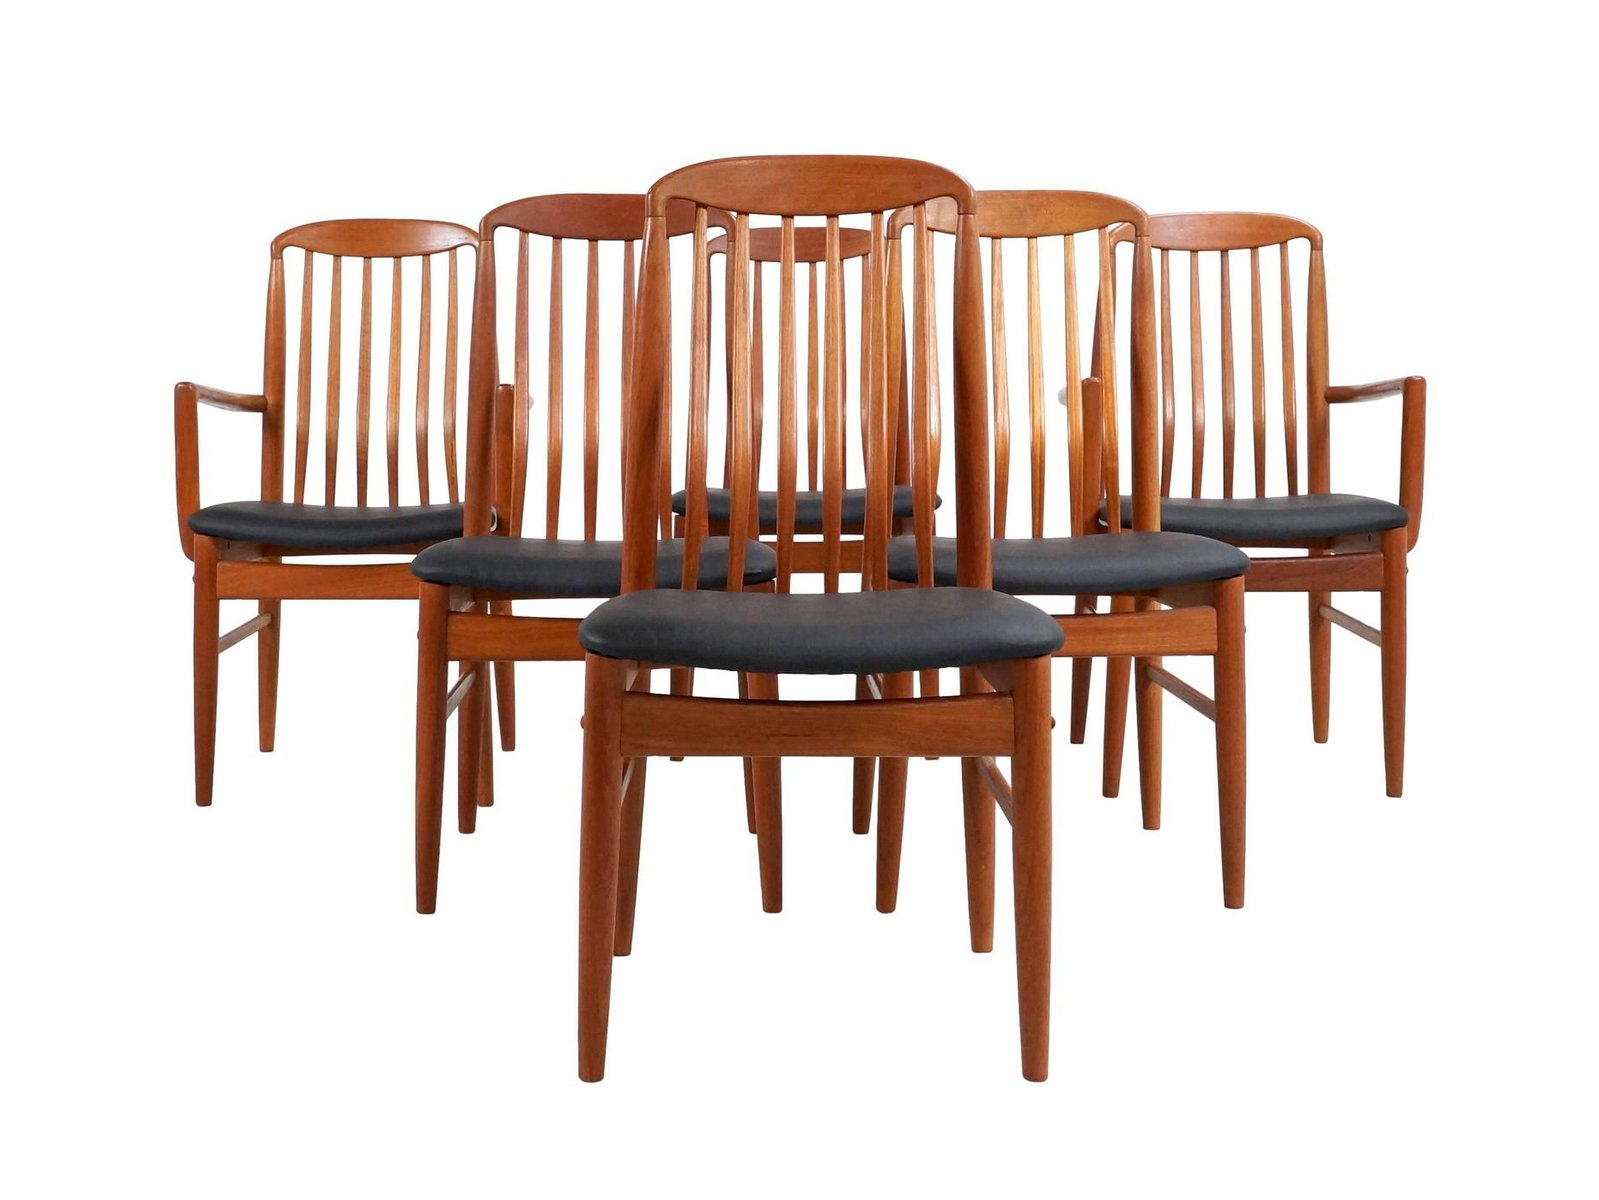 Thai teak dining chairs by benny linden 1970s set of 6 for Furniture design thailand